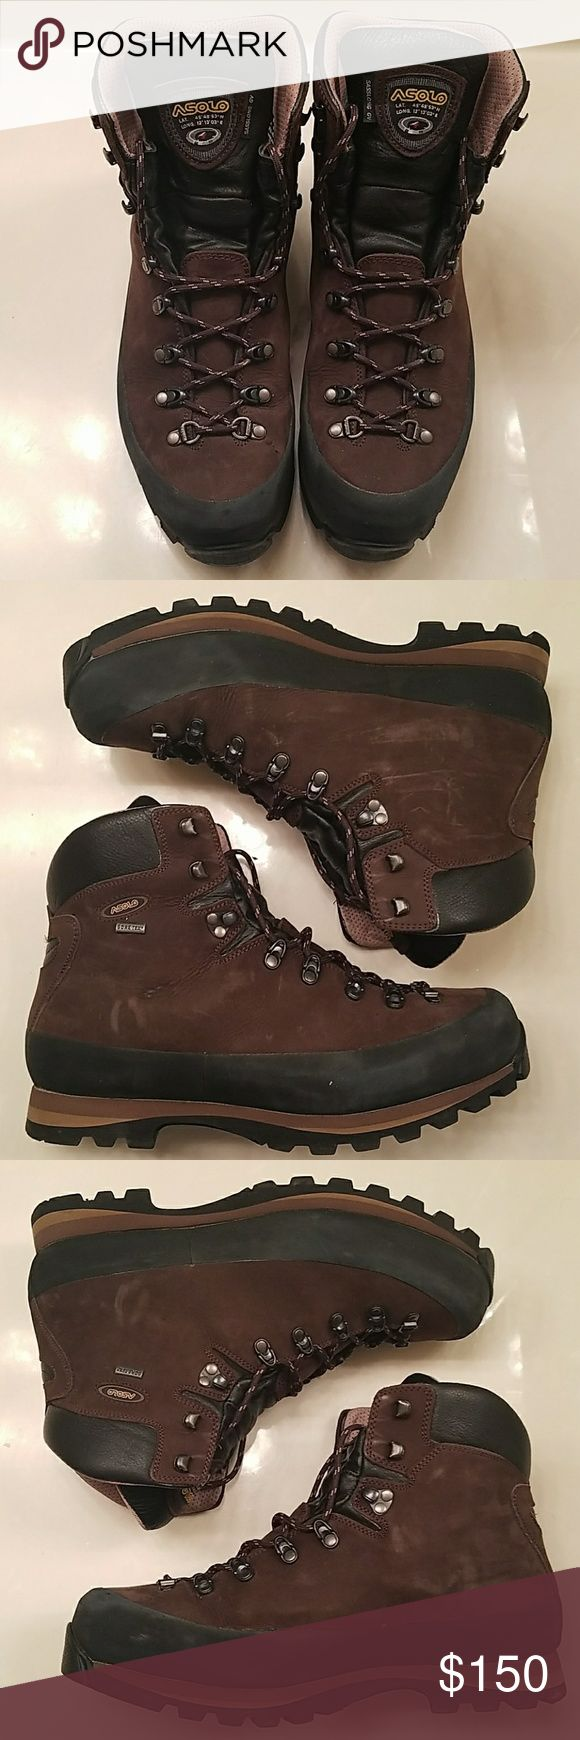 Asolo Gore-Tex Hiking Boots, Sasslong GV Asolo Brown Gore-Tex Hiking Boots, Sasslong GV. Gore Tex, waterproof, in excellent condition. These have never been in the rain or mud. Still have new shoe smell Asolo Shoes Boots